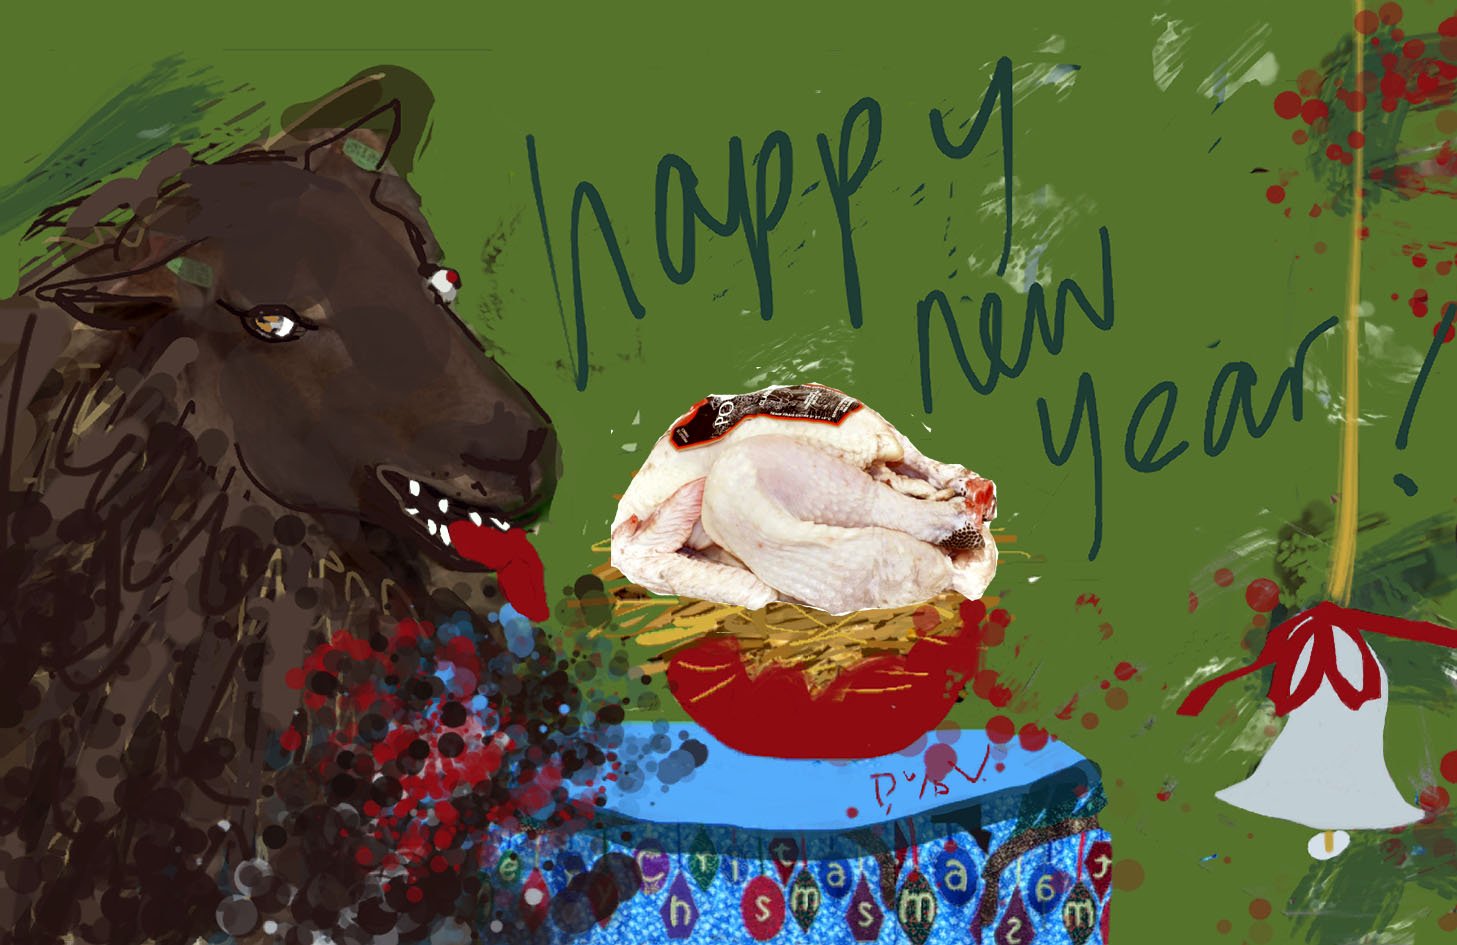 Happy New Year, free digital painting